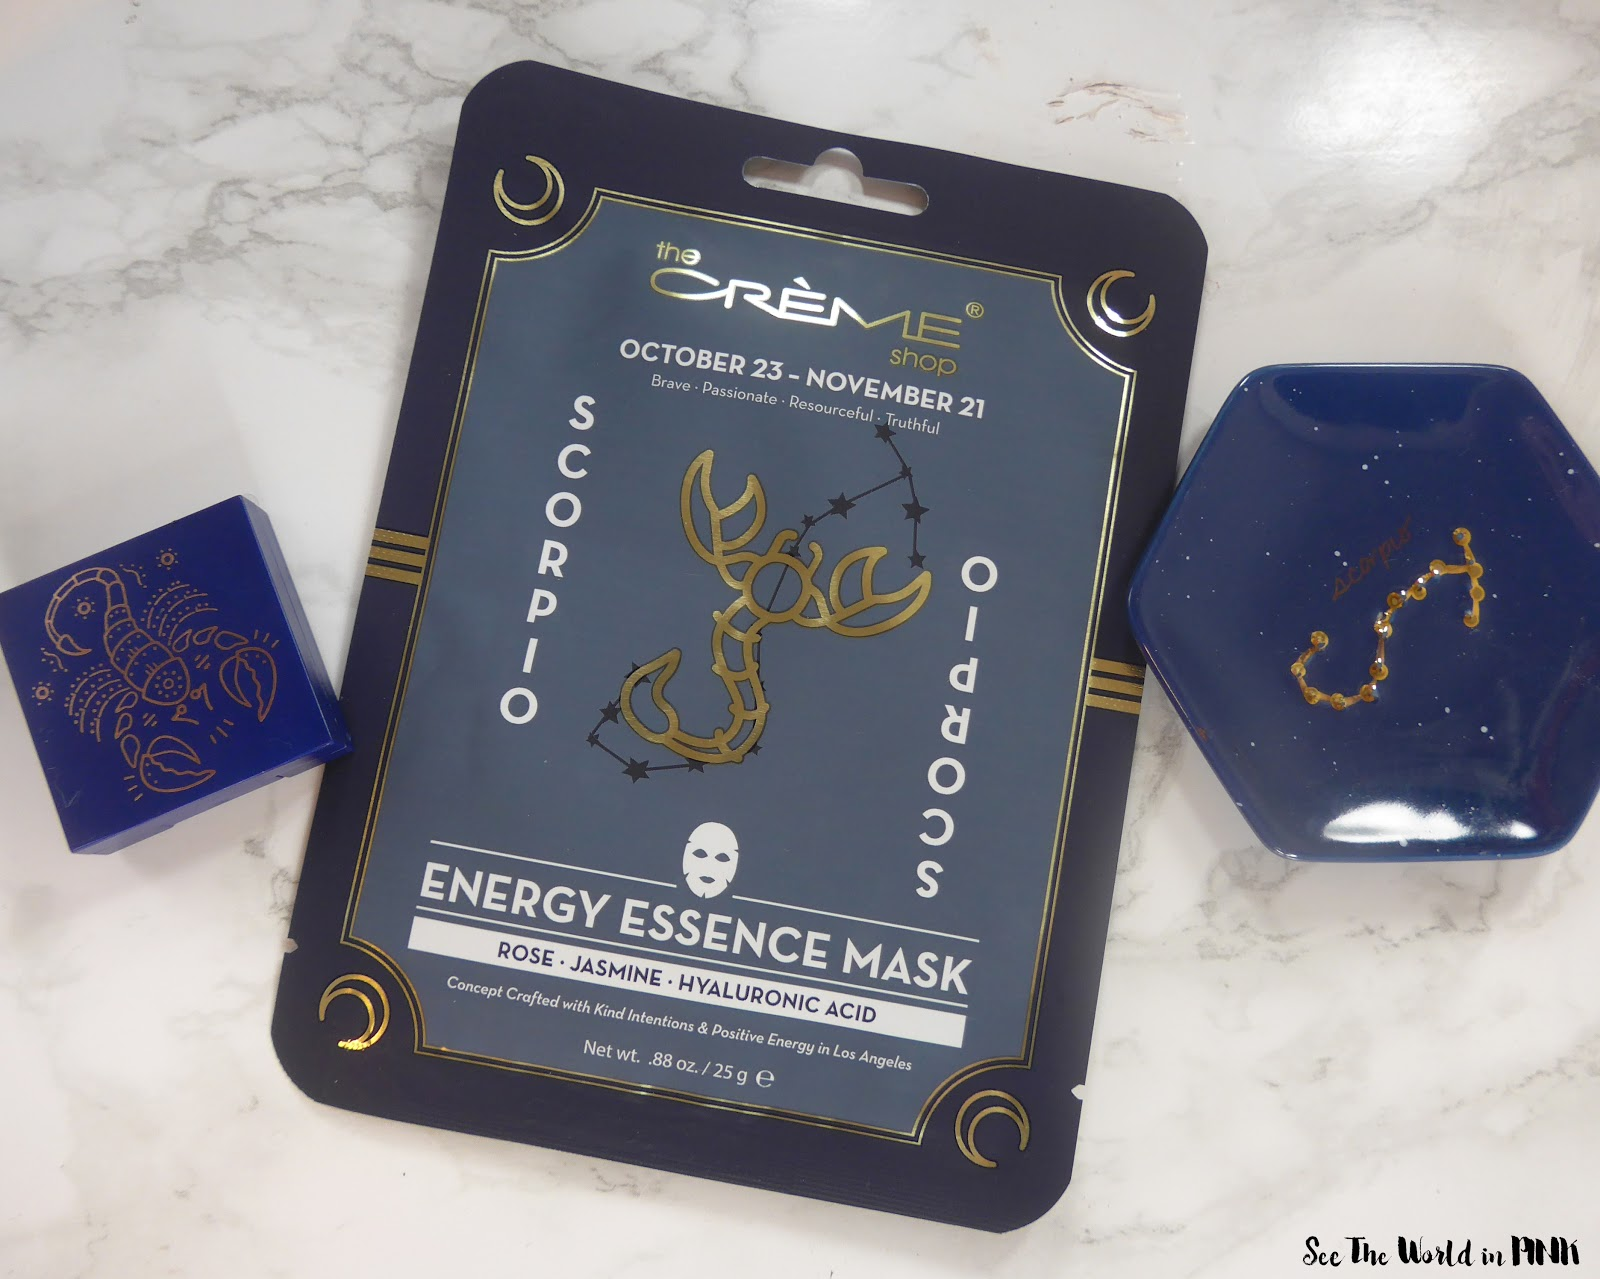 Mask Wednesday - The Creme Shop Energy Essence Scorpio Zodiac Mask